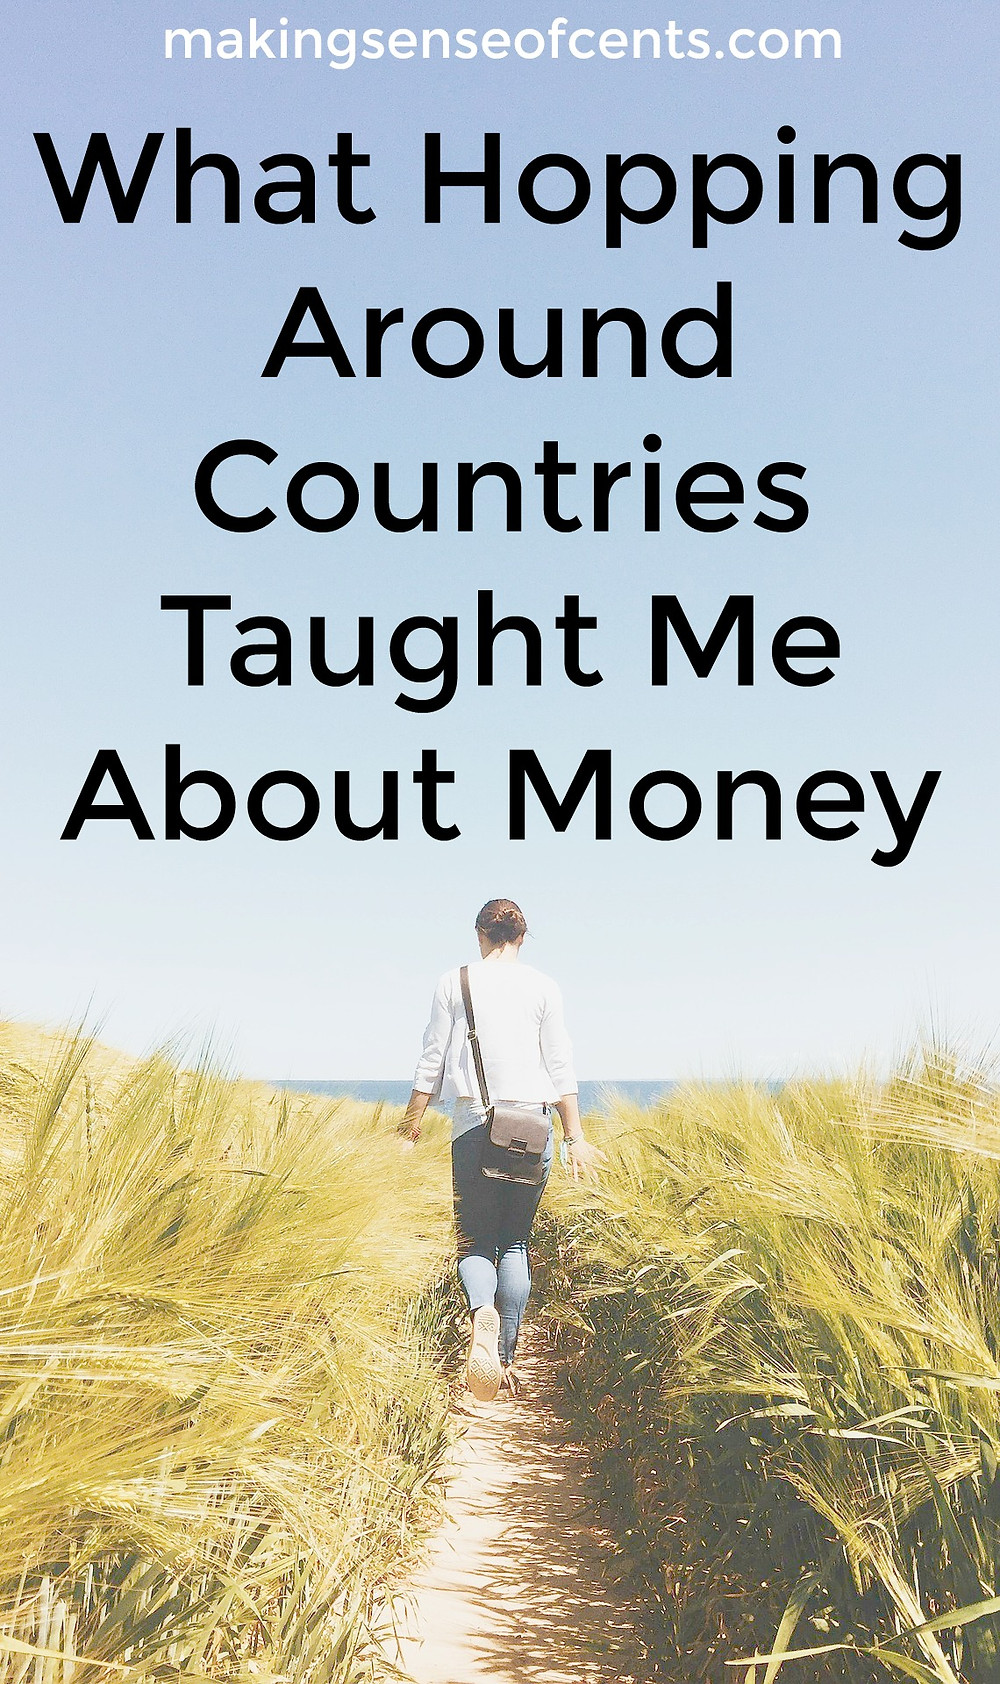 Find out what hopping around counrties has taught me about money.